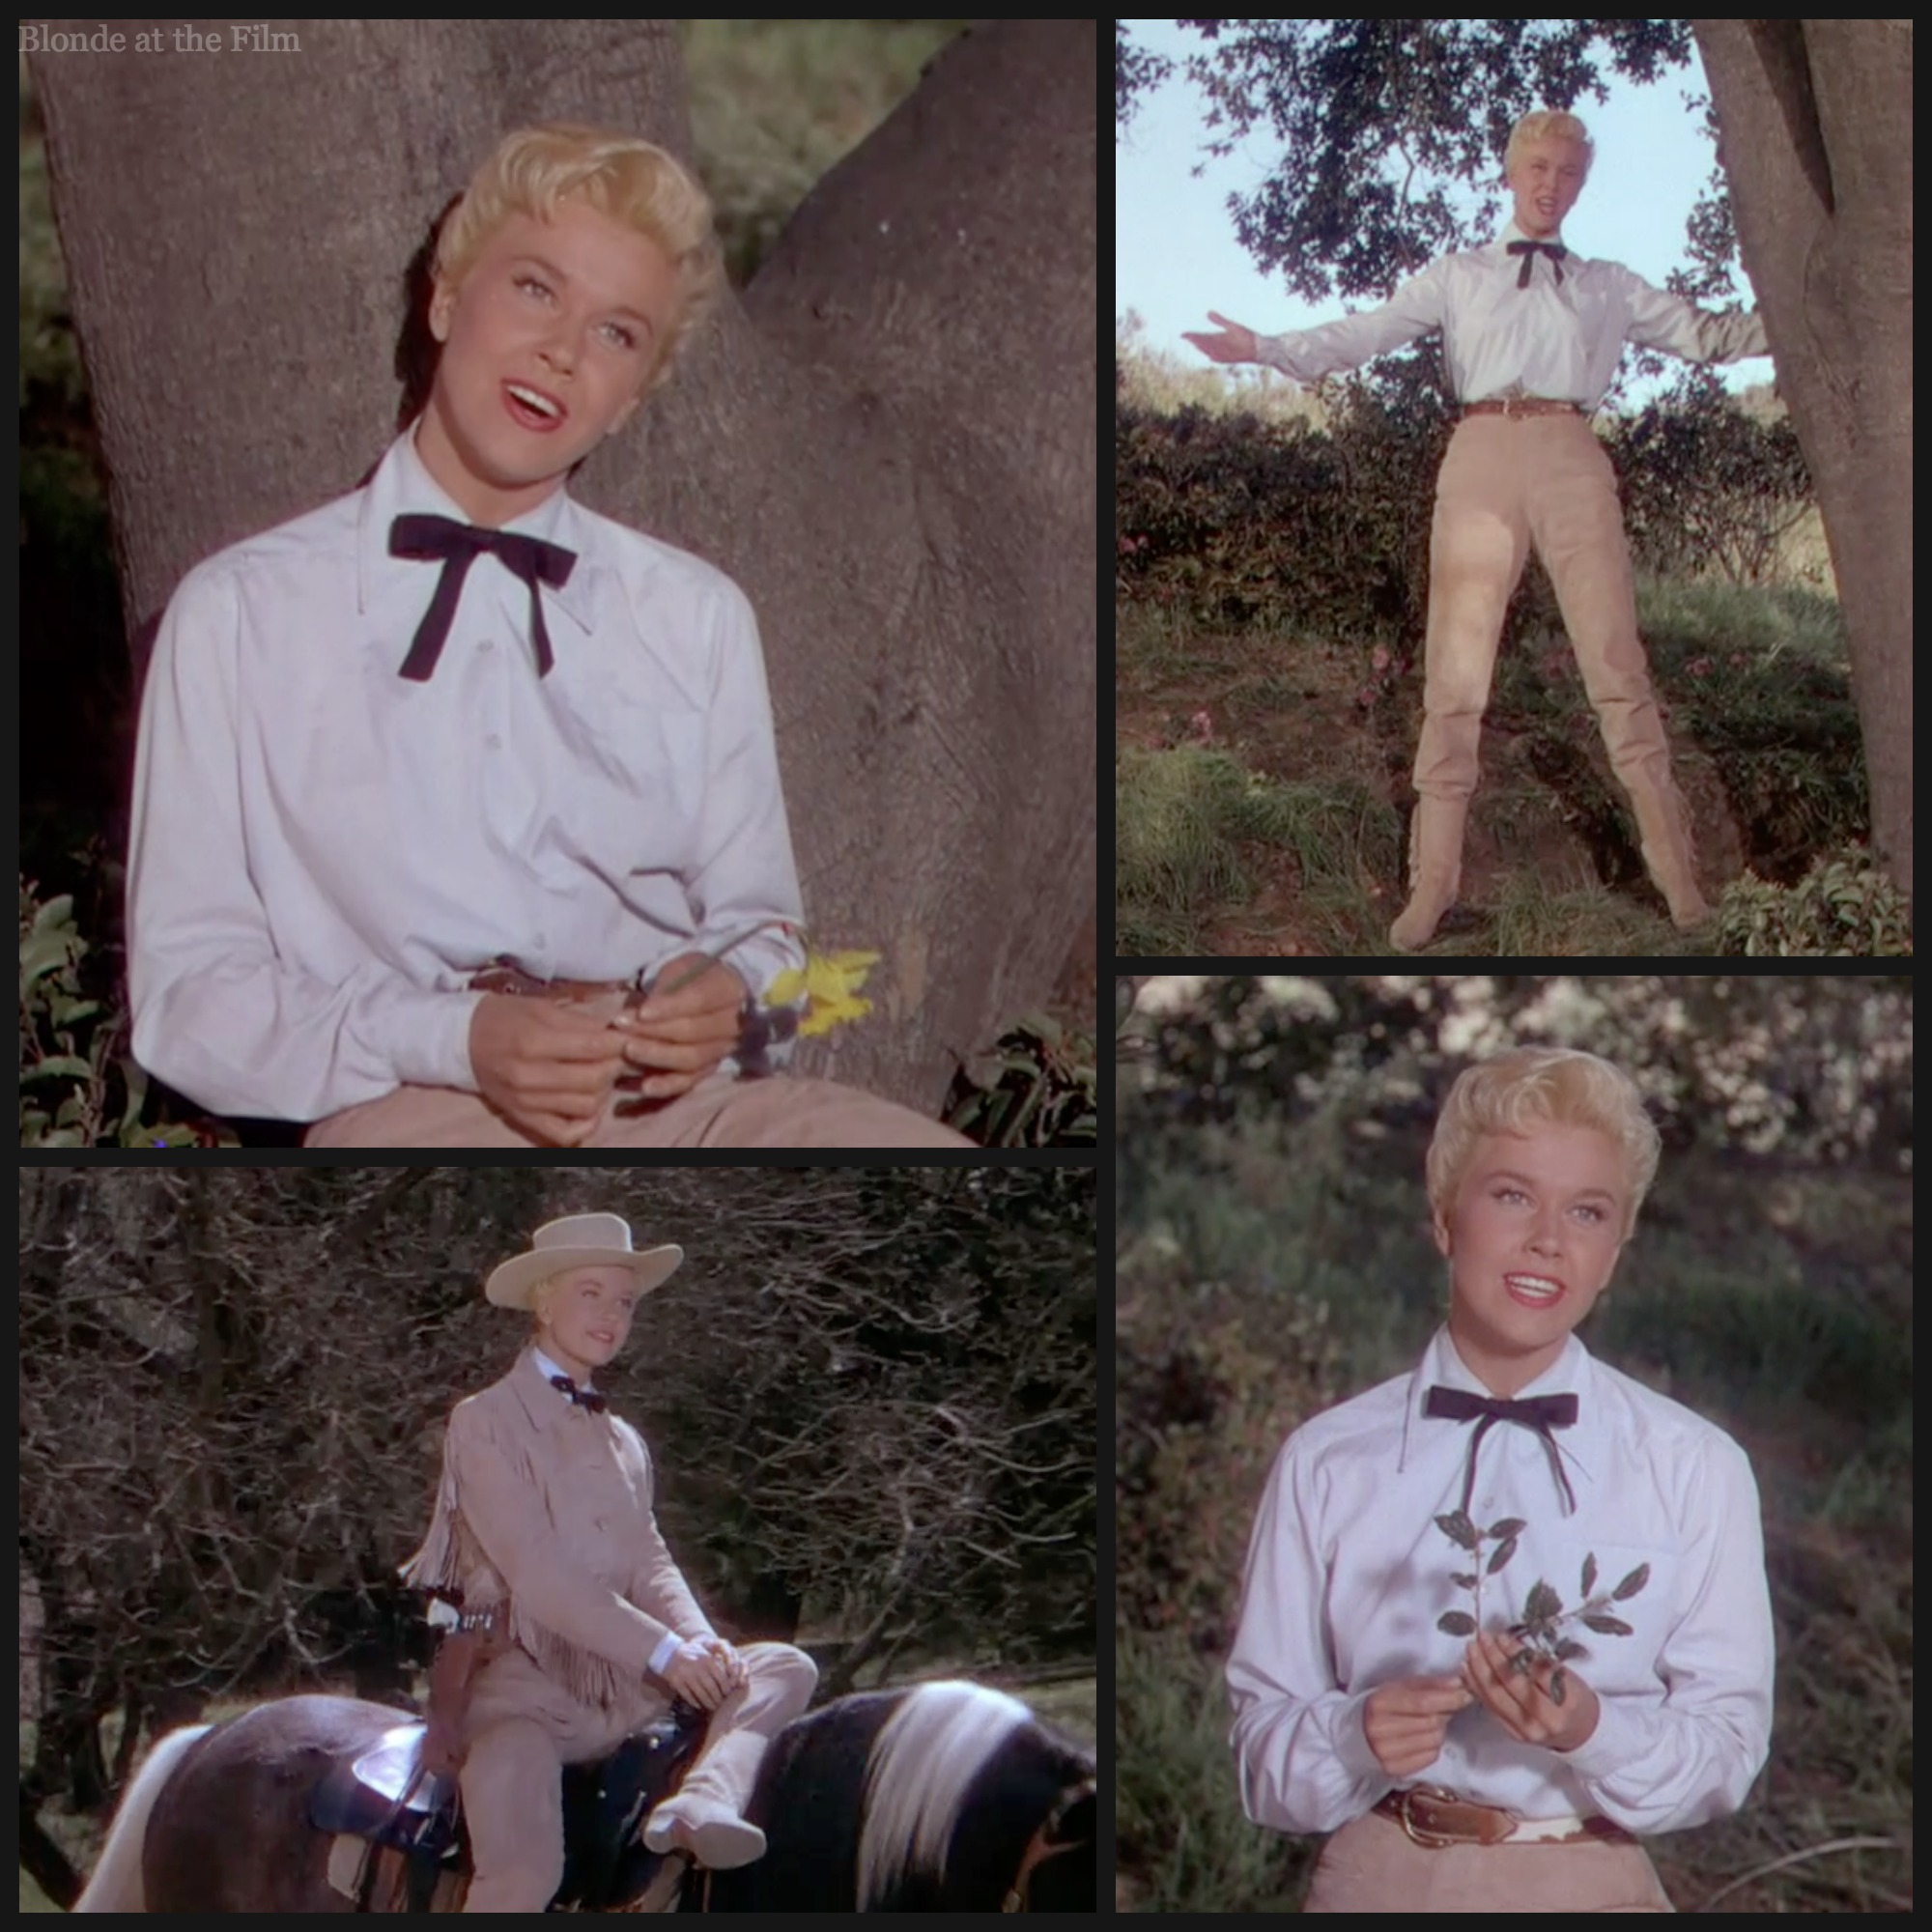 from Kohen doris day gay film